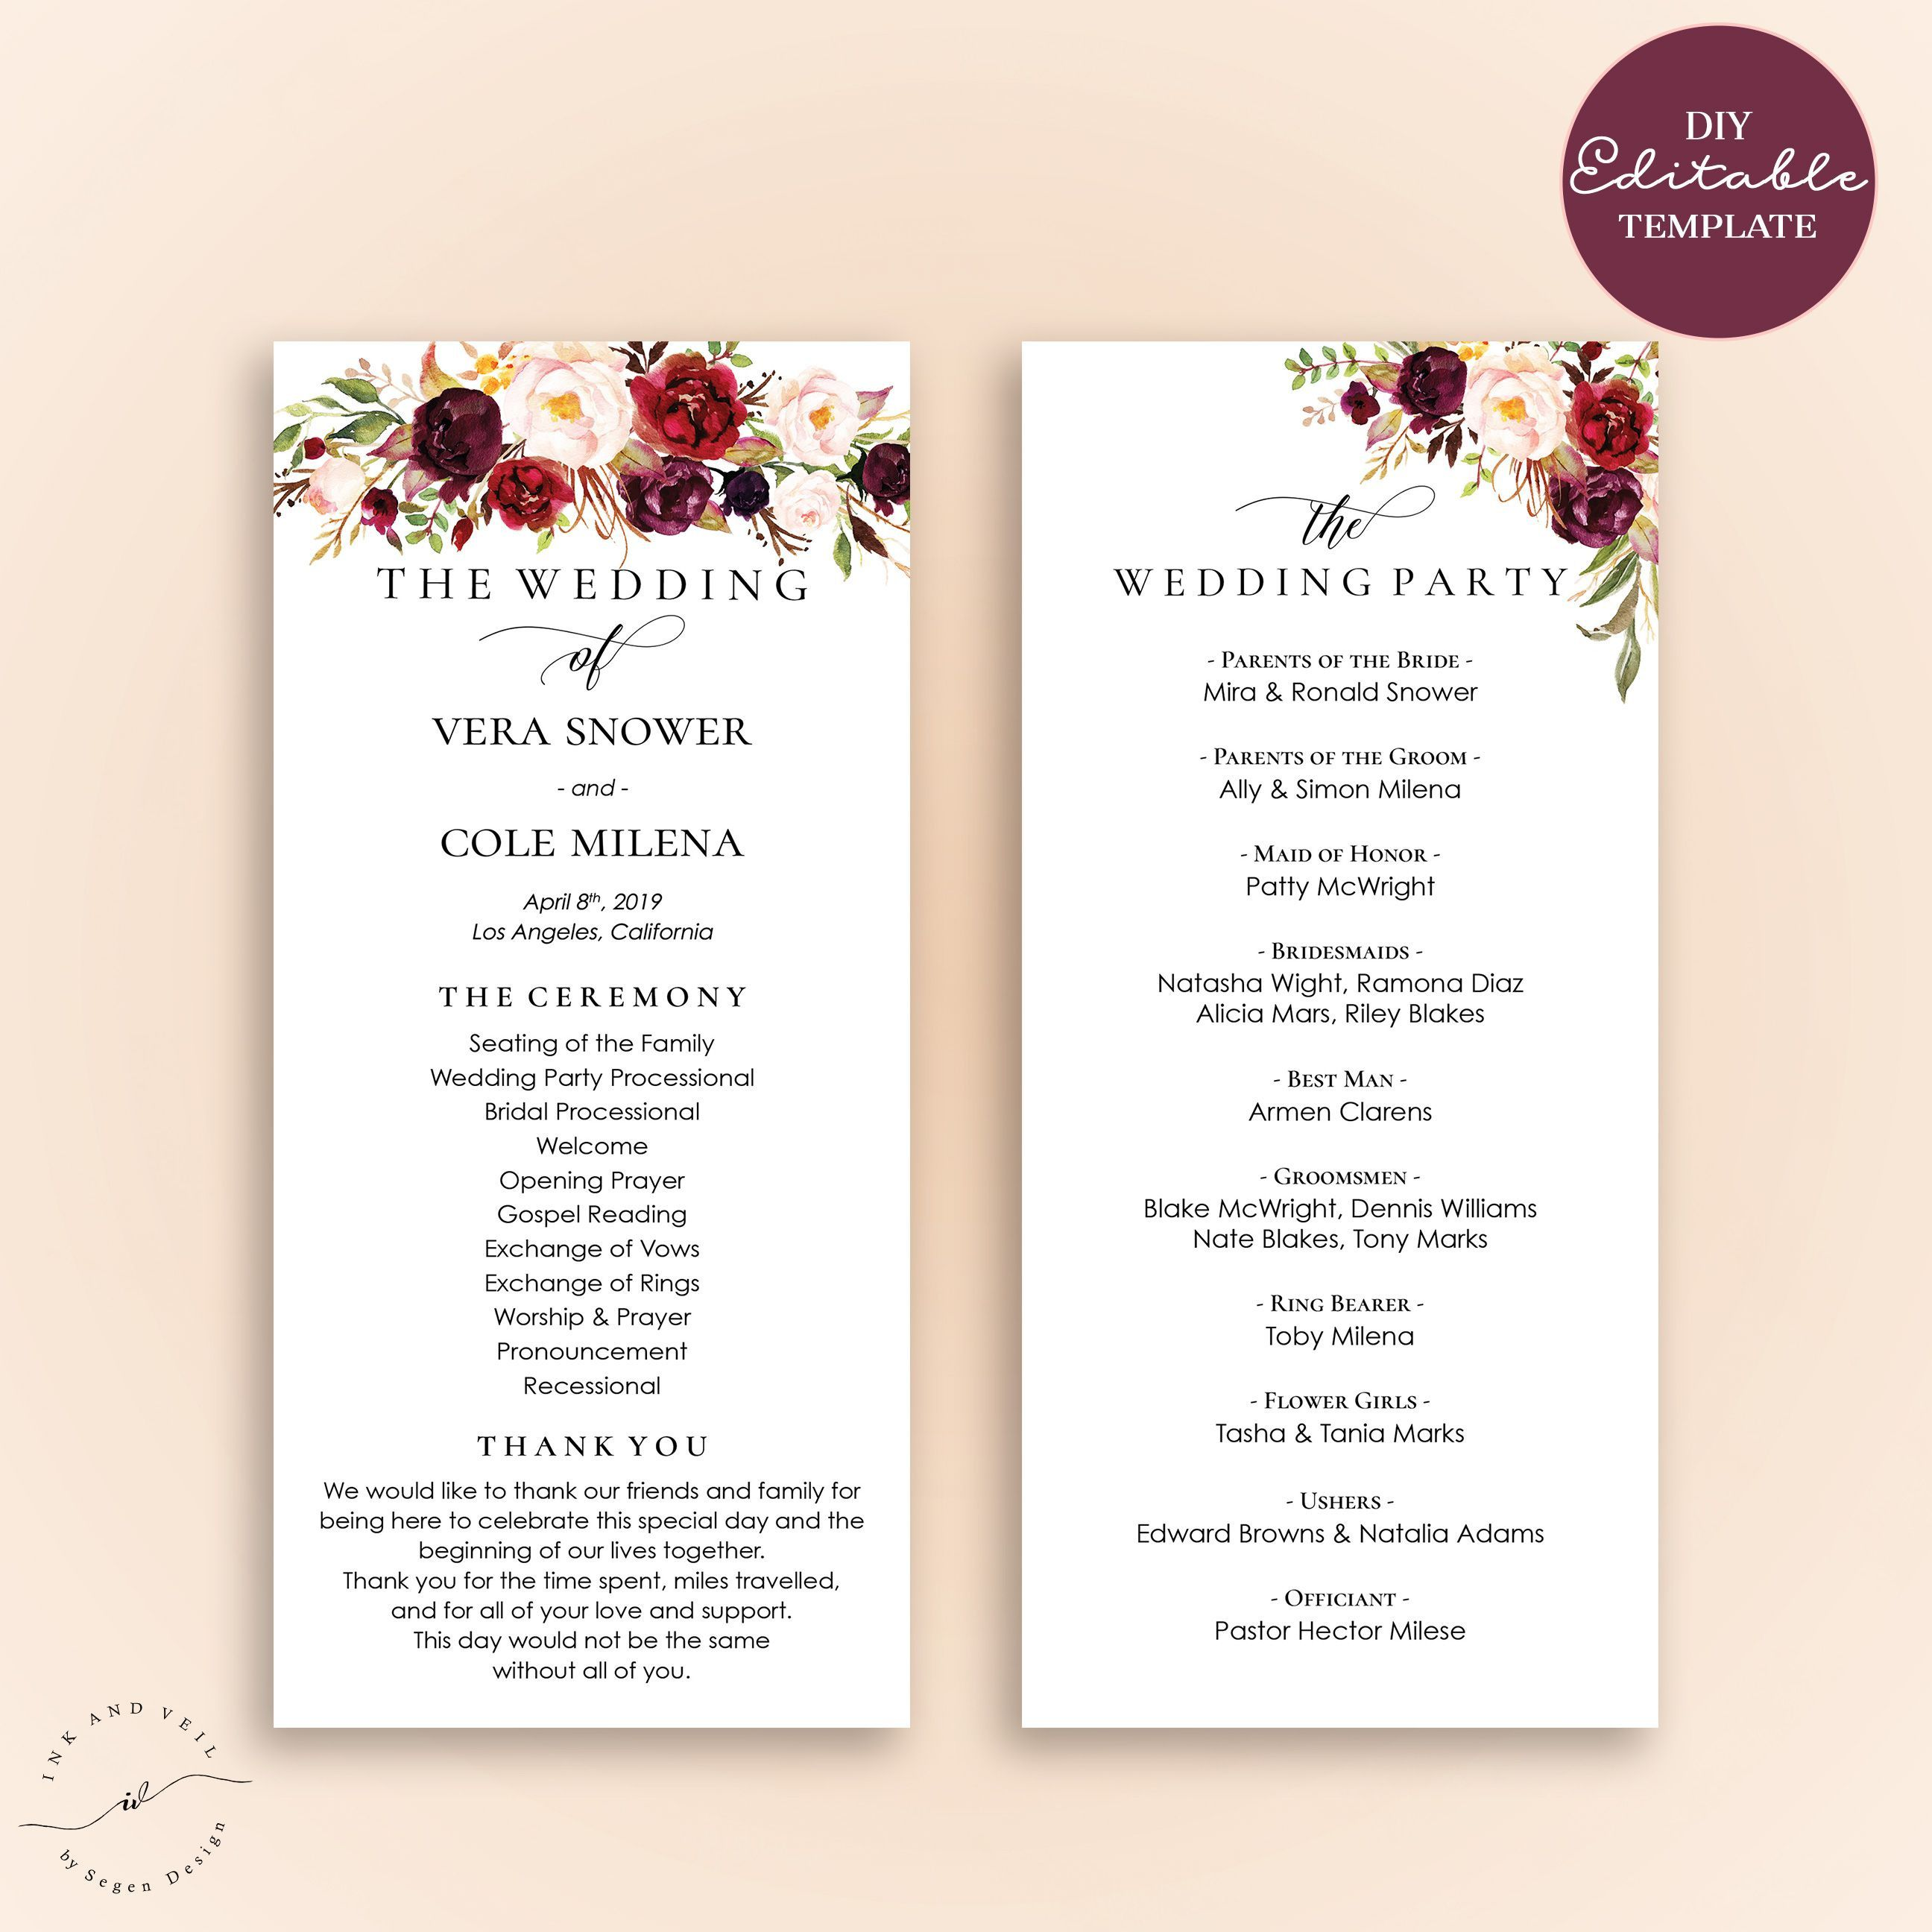 005 Formidable Wedding Order Of Service Template Free Download Idea  Downloadable That Can Be PrintedFull